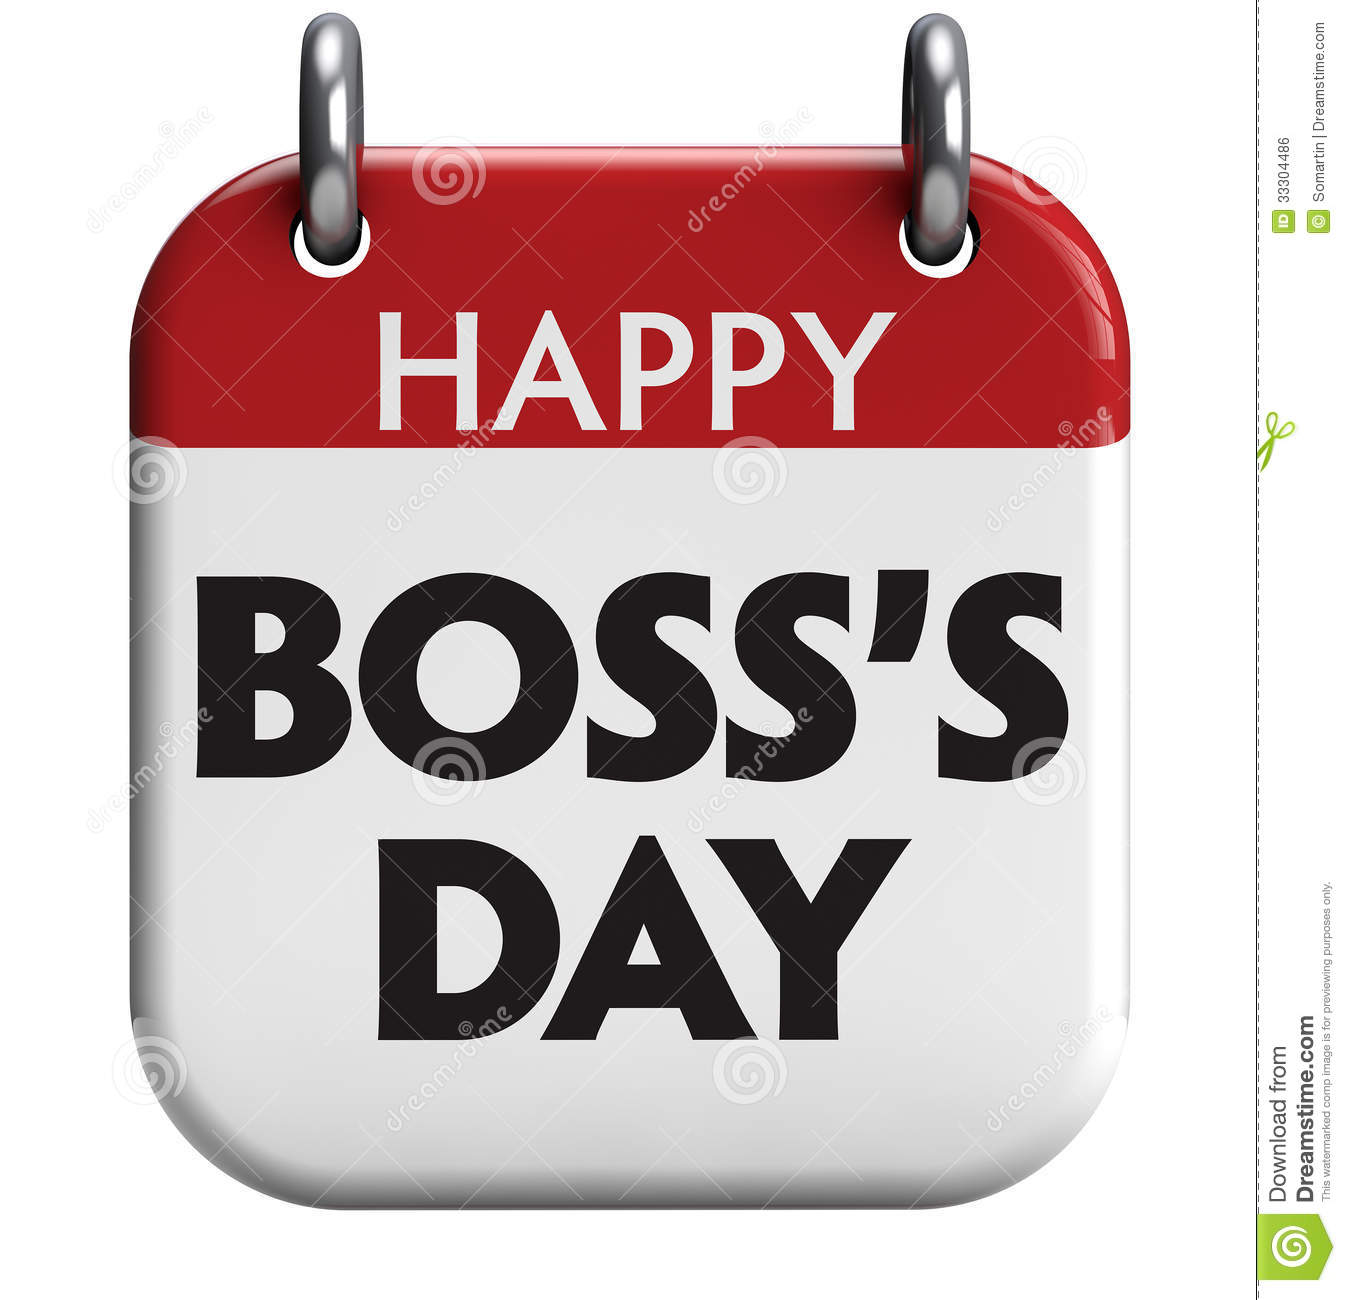 55 Latest Boss Day Wish Pictures And Photos